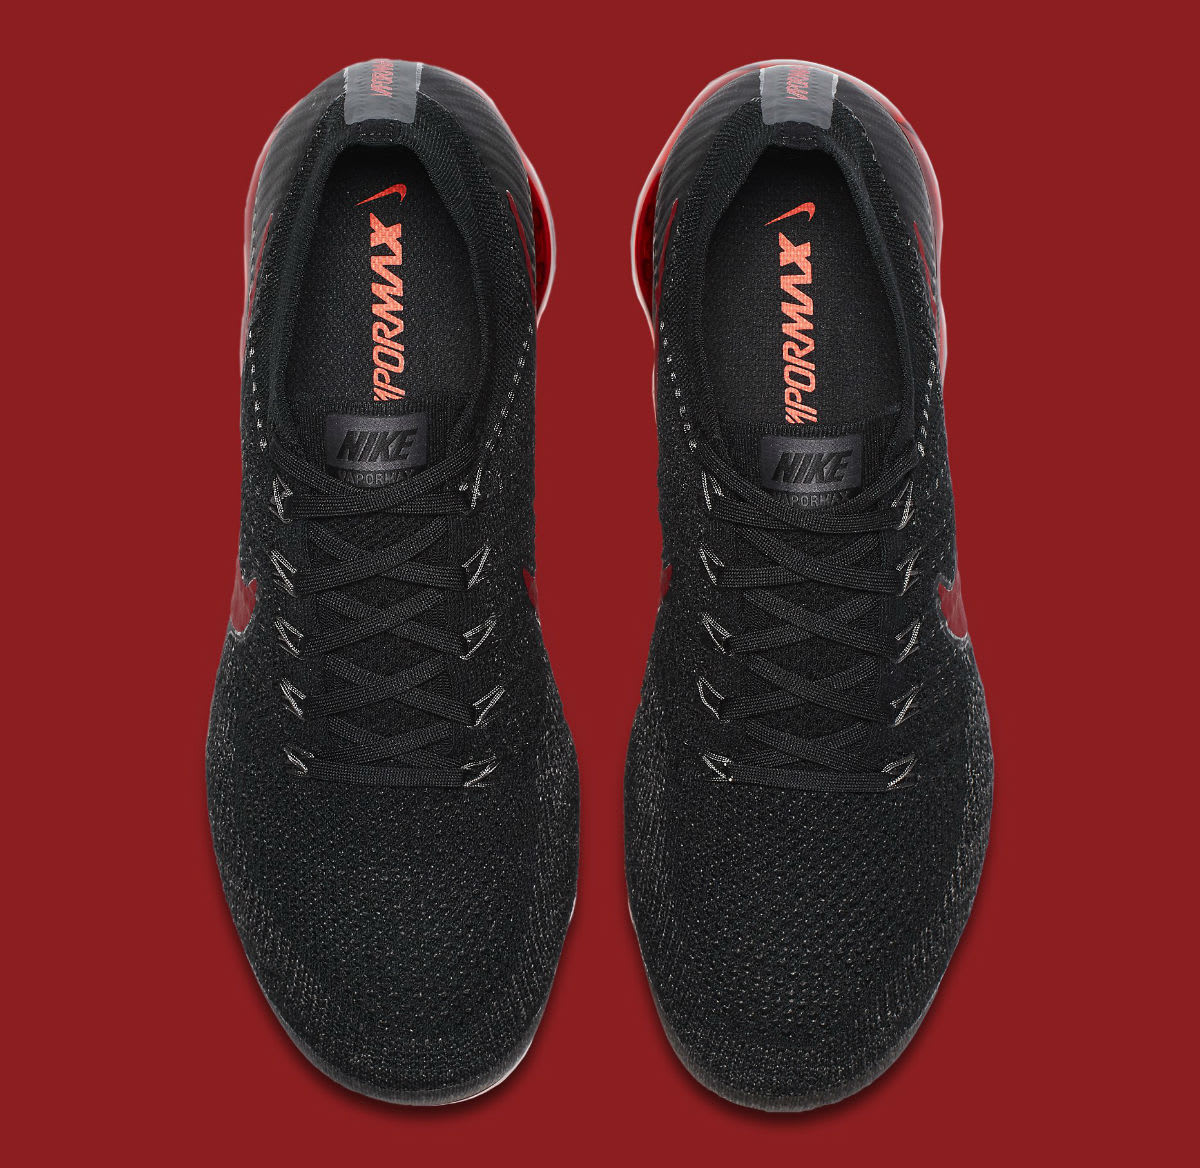 61fdbec760 Nike Air VaporMax Bred Release Date 849558-013 Top . ...